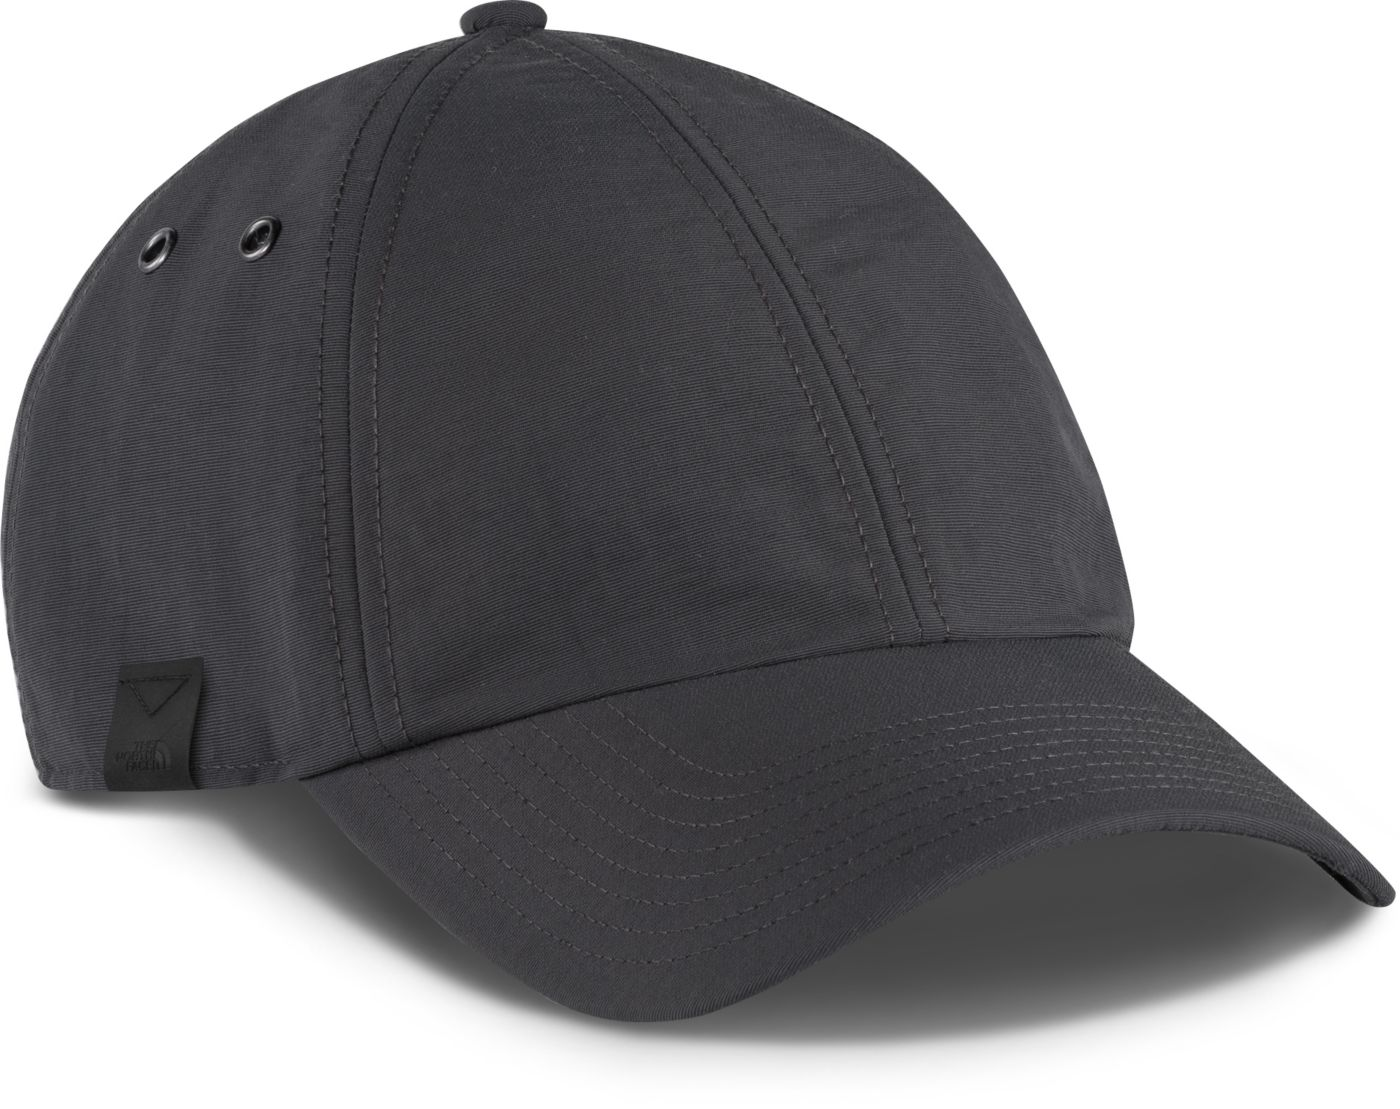 The North Face Men's Field Guide Hat